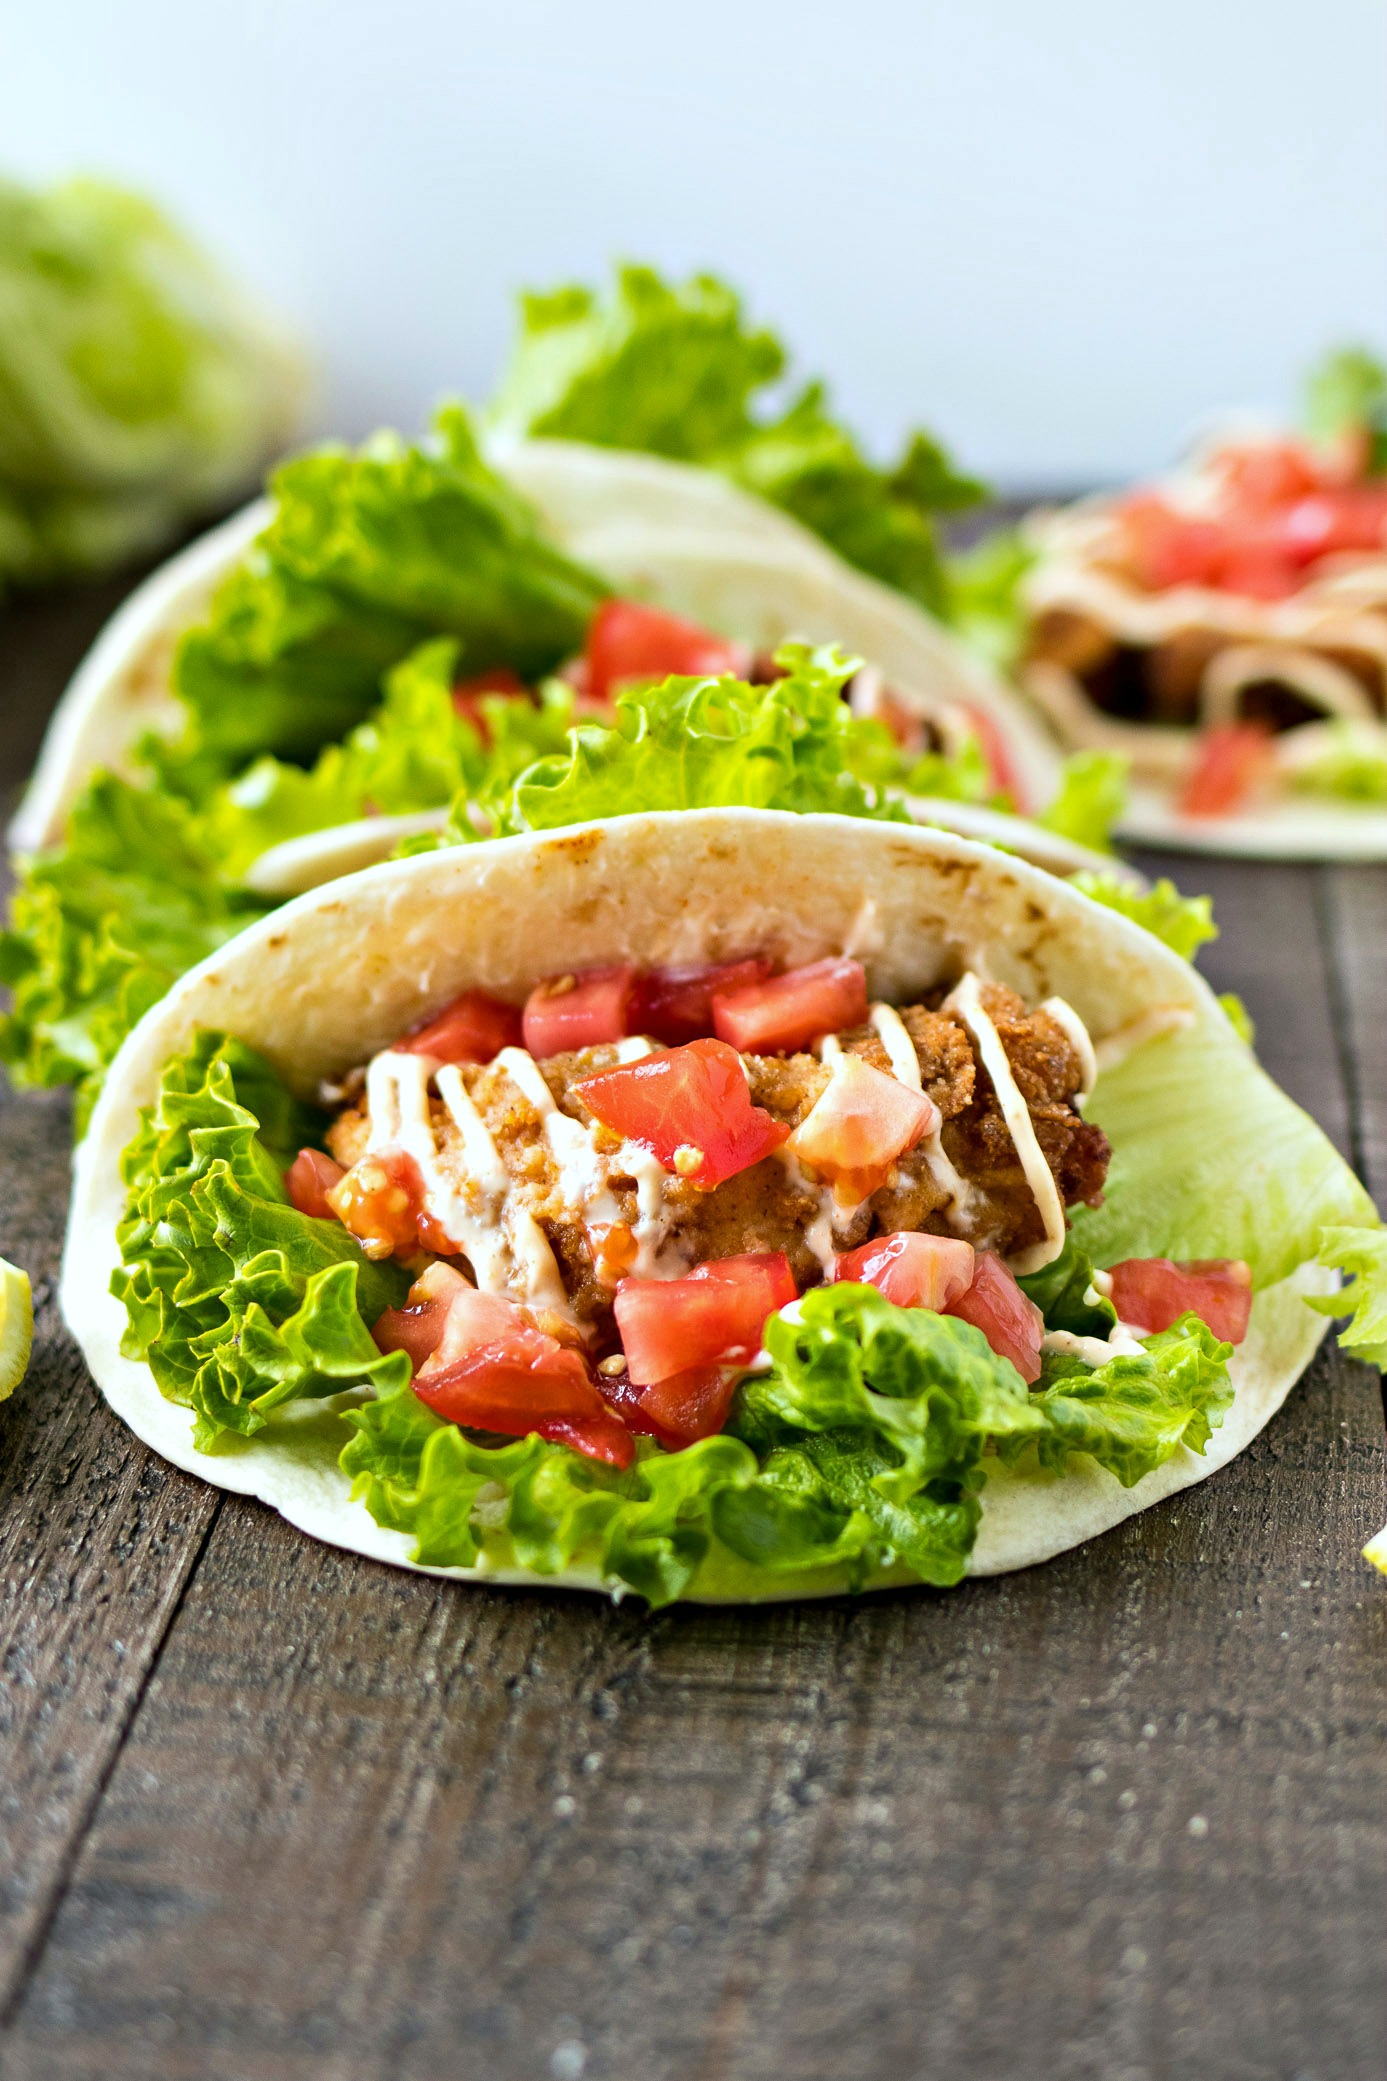 Fried Chicken Tacos - A crispy buttermilk fried chicken tender wrapped in leafy lettuce and a flour tortilla and finished with juicy diced tomatoes and a lemon garlic mayo. A simple, yet delicious new way to get your taco fix on Taco Tuesday!